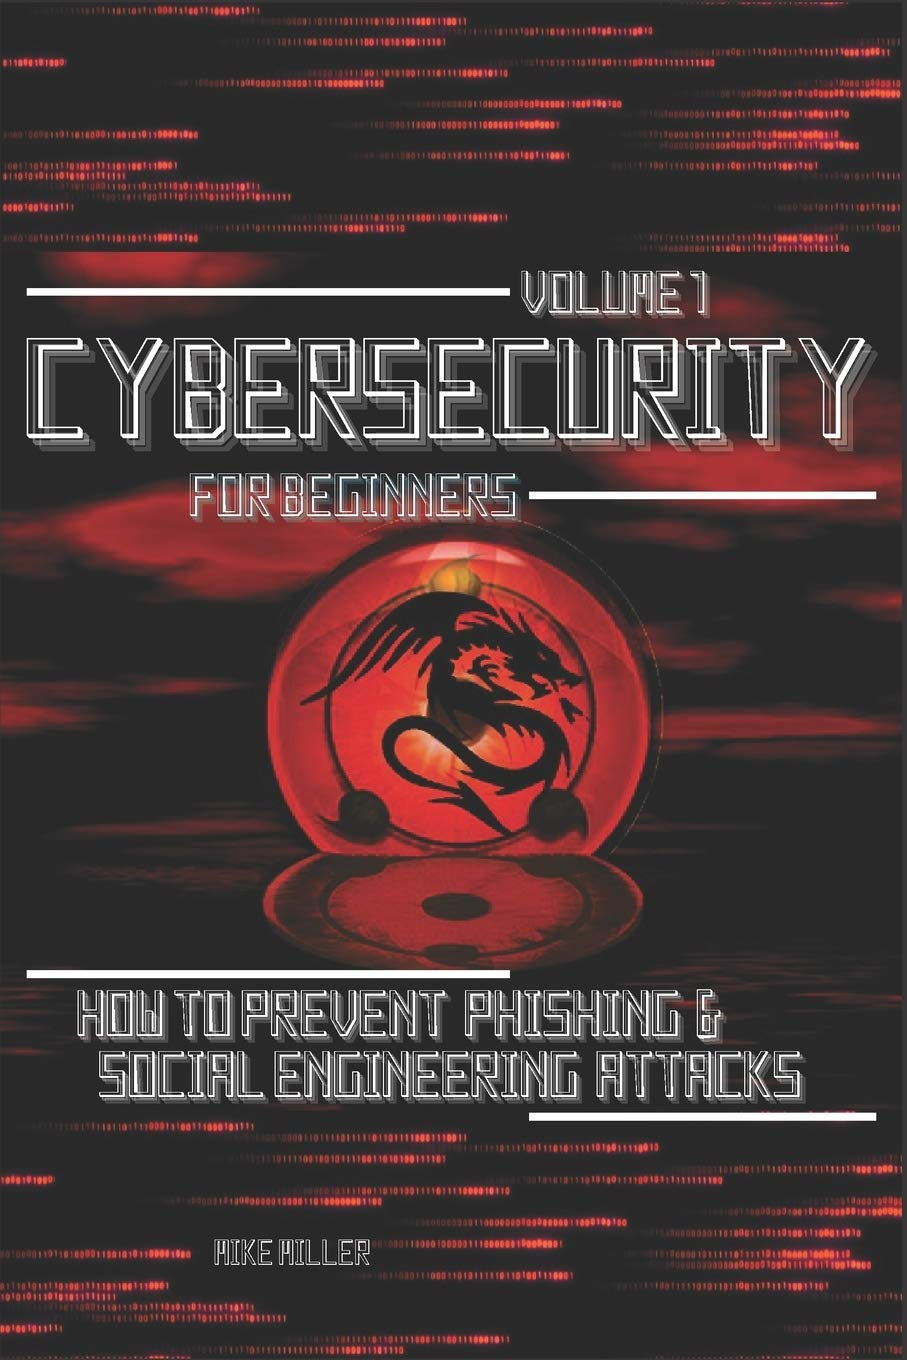 Cybersecurity for Beginners: How to prevent Phishing & Social Engineering Attacks